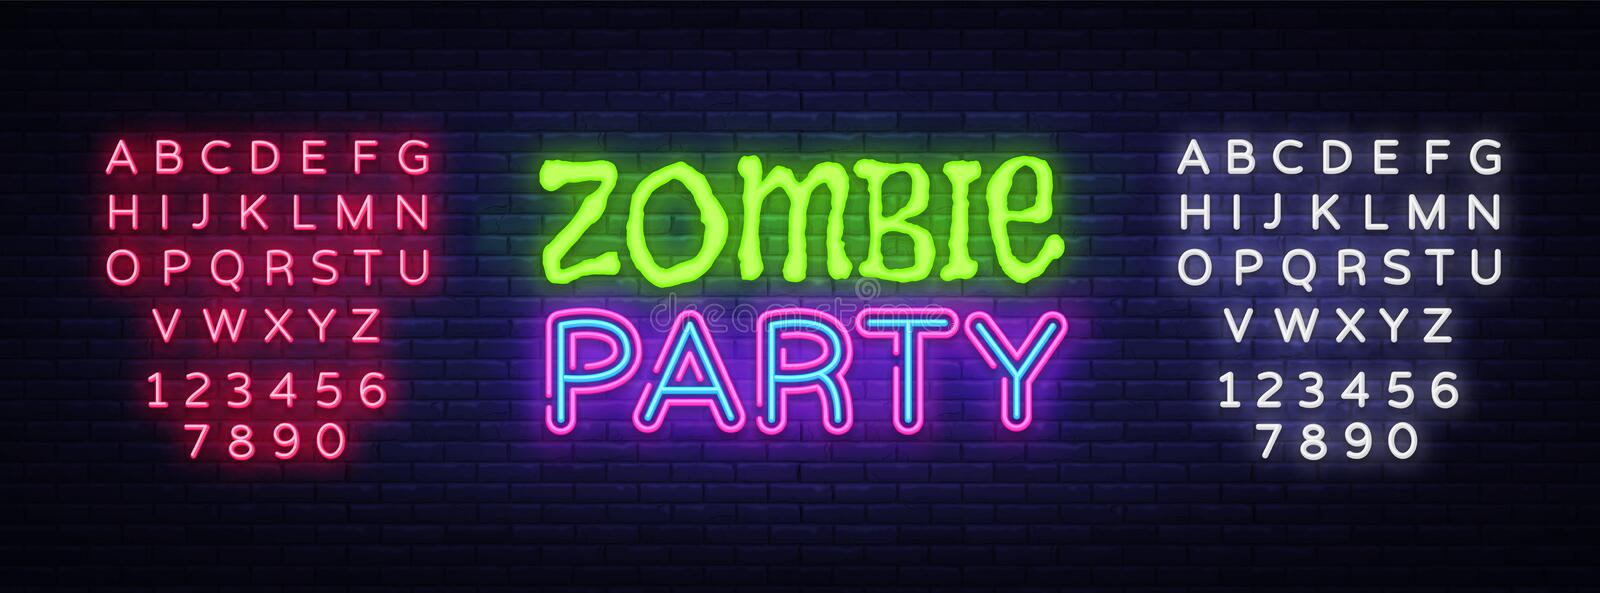 Zombie Party Text Vector. Halloween neon sign, design template, modern trend design, night neon signboard, night bright. Advertising, light banner, light art stock illustration